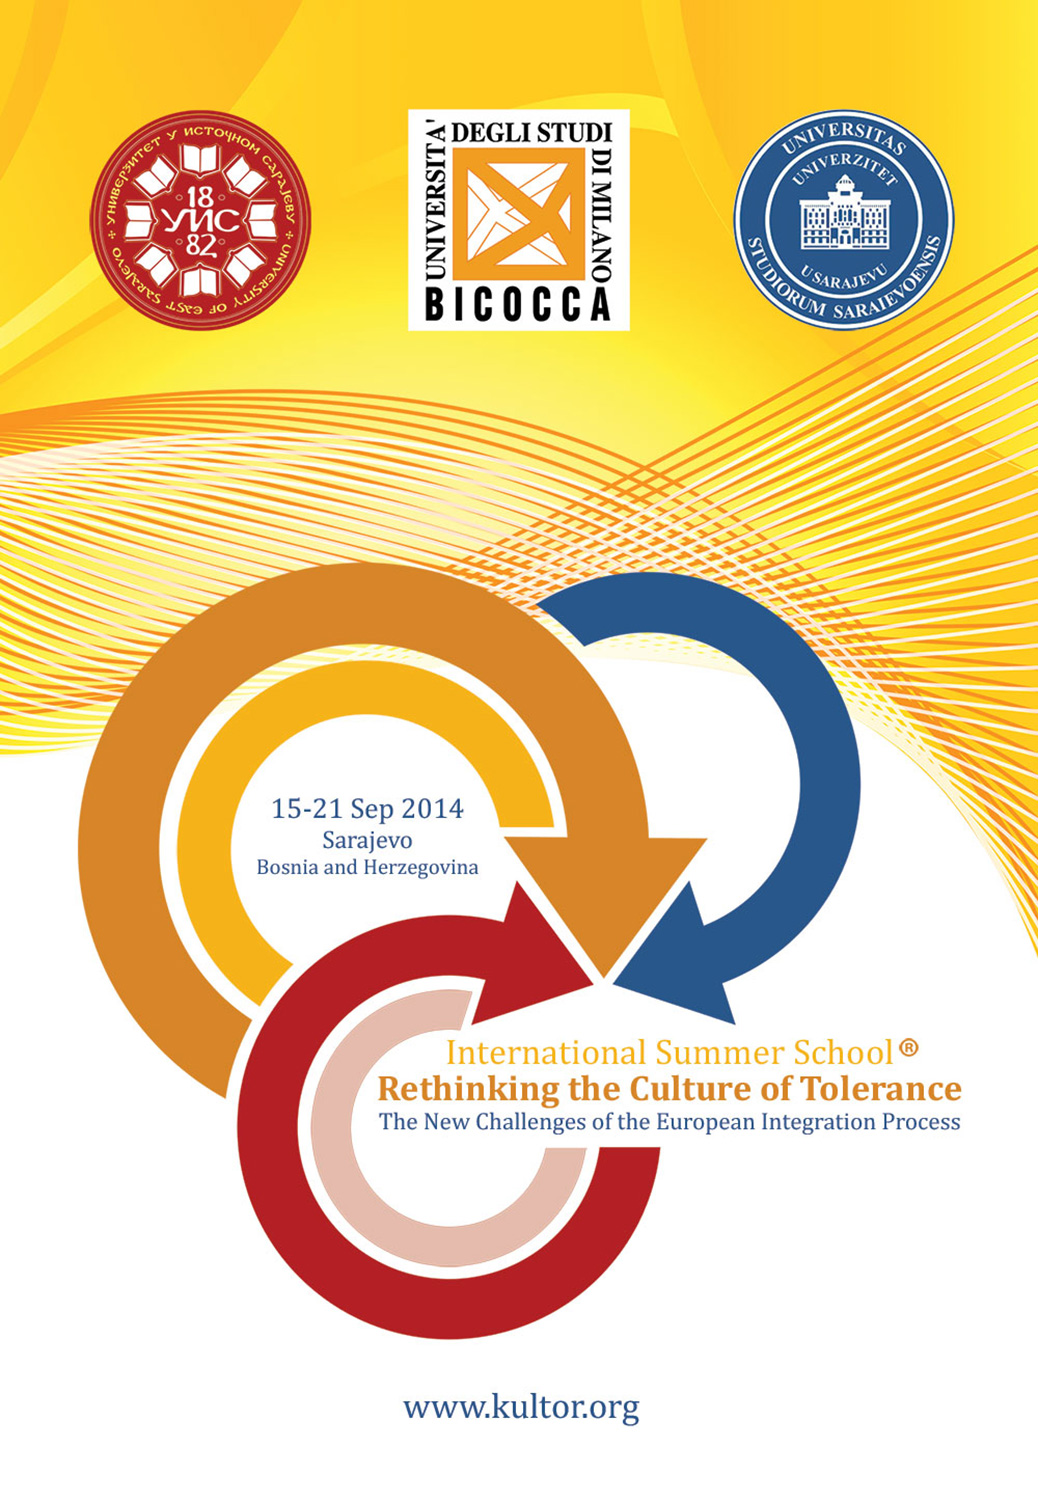 The International Summer School 'Rethinking the Culture of Tolerance' 2014